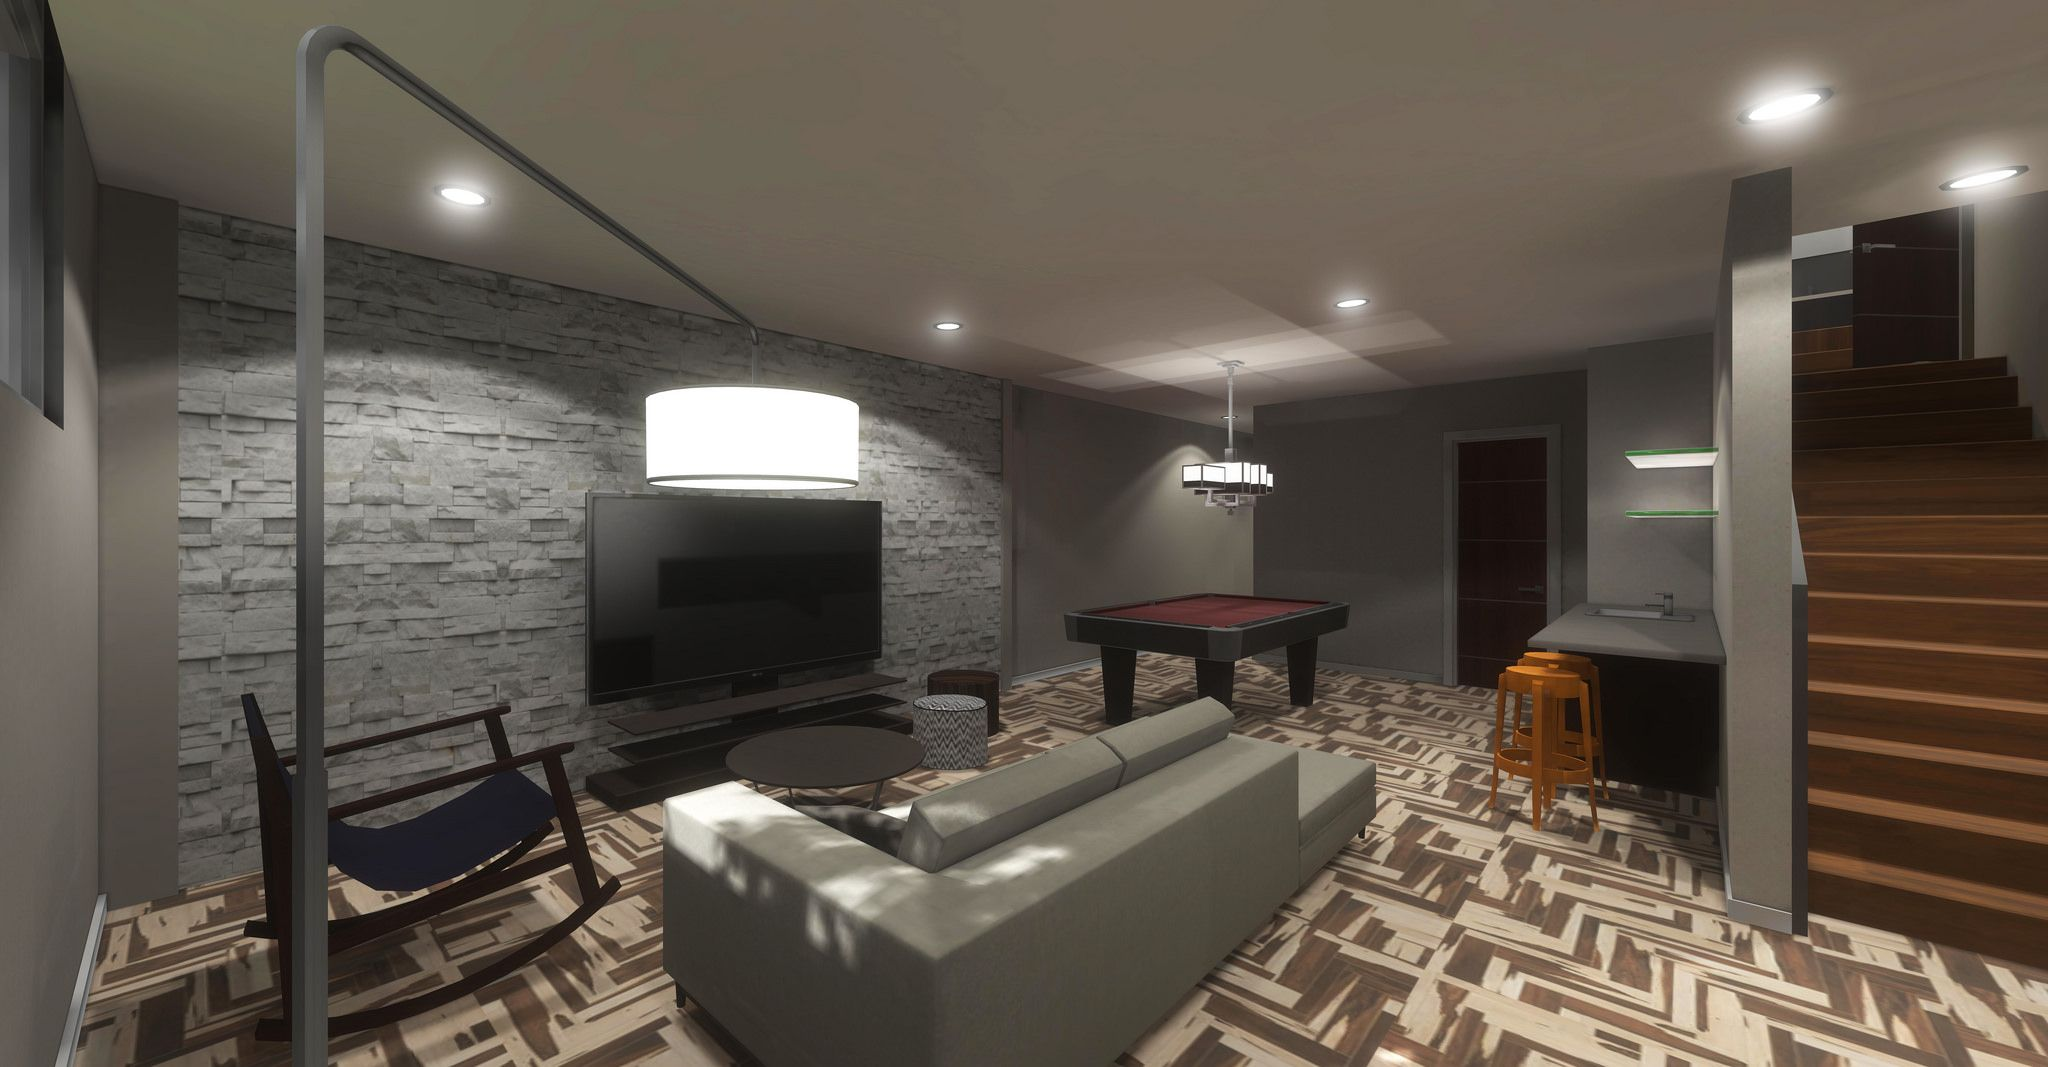 Interior Design Visualization With Oculus Rift For Architectural Models Http Www Archvirtual Com Architecture Model Architecture Virtual Reality Applications